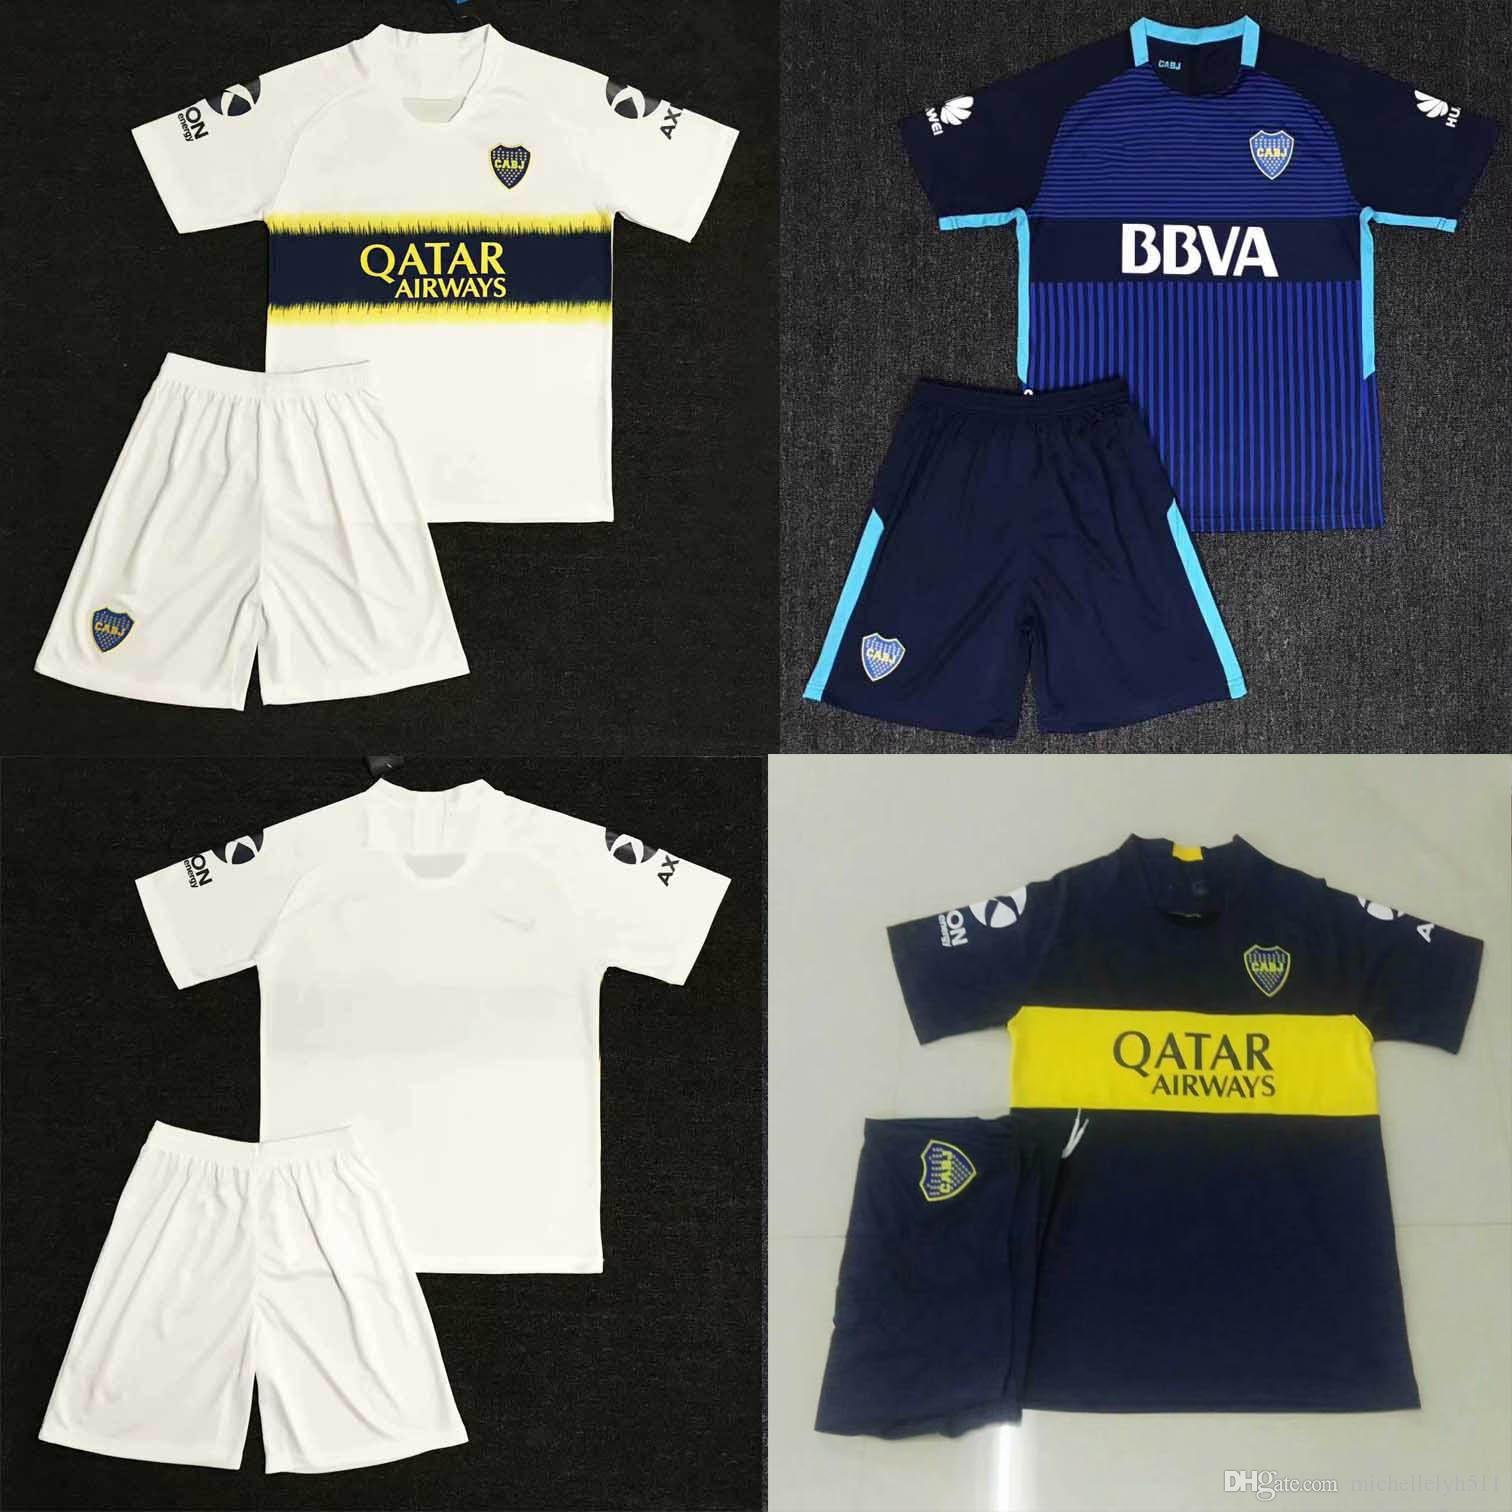 c5cef0f7d 2019 18 19 Boca Juniors Soccer Jersey Shorts 2018 19 GAGO OSVALDO CARLITOS  PEREZ P Soccer Kits Boca Home Away Football Sets Mens Sports Uniforms From  ...